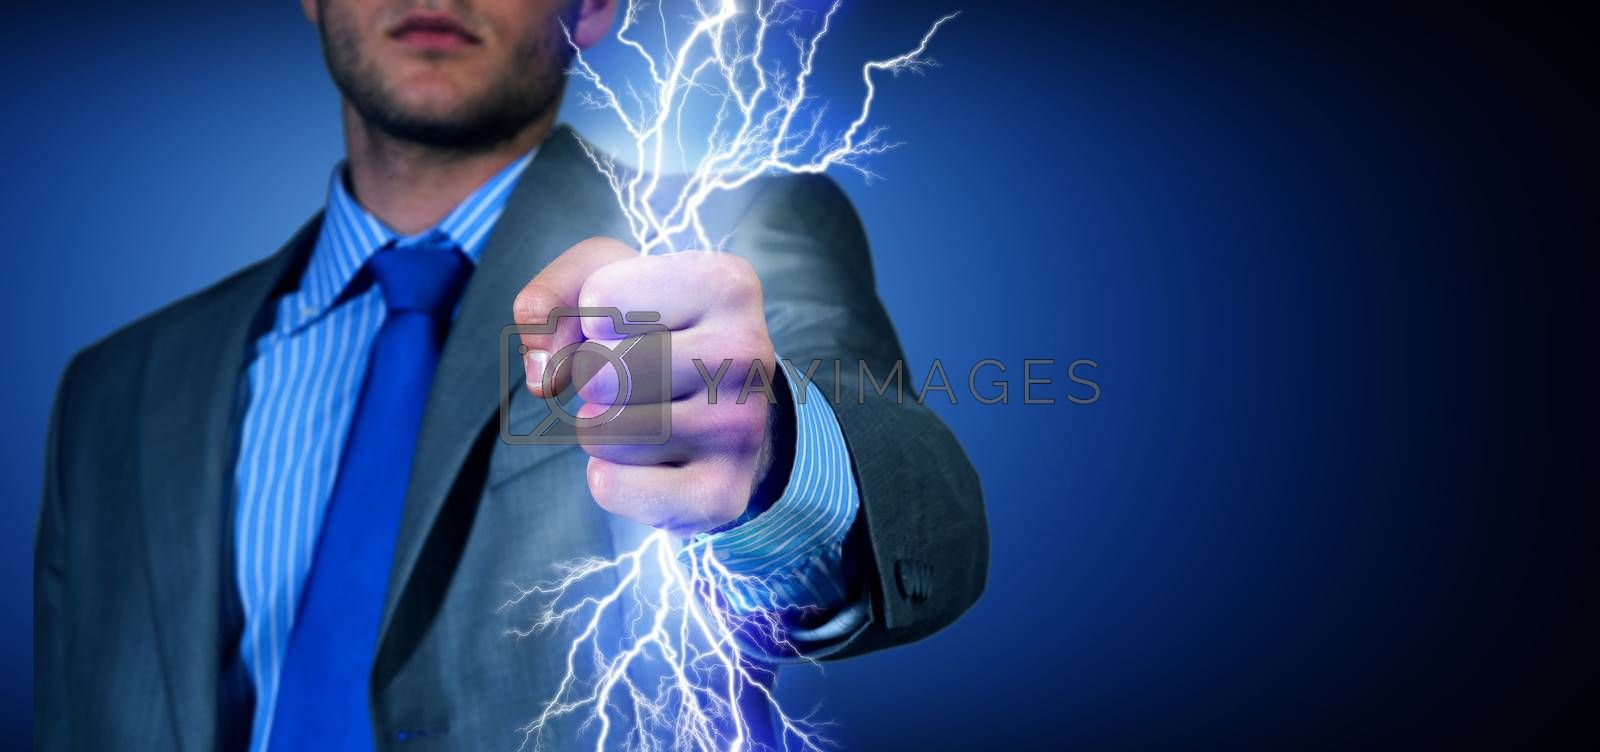 close-up of clasped hand, hand of lightning flashes and lights